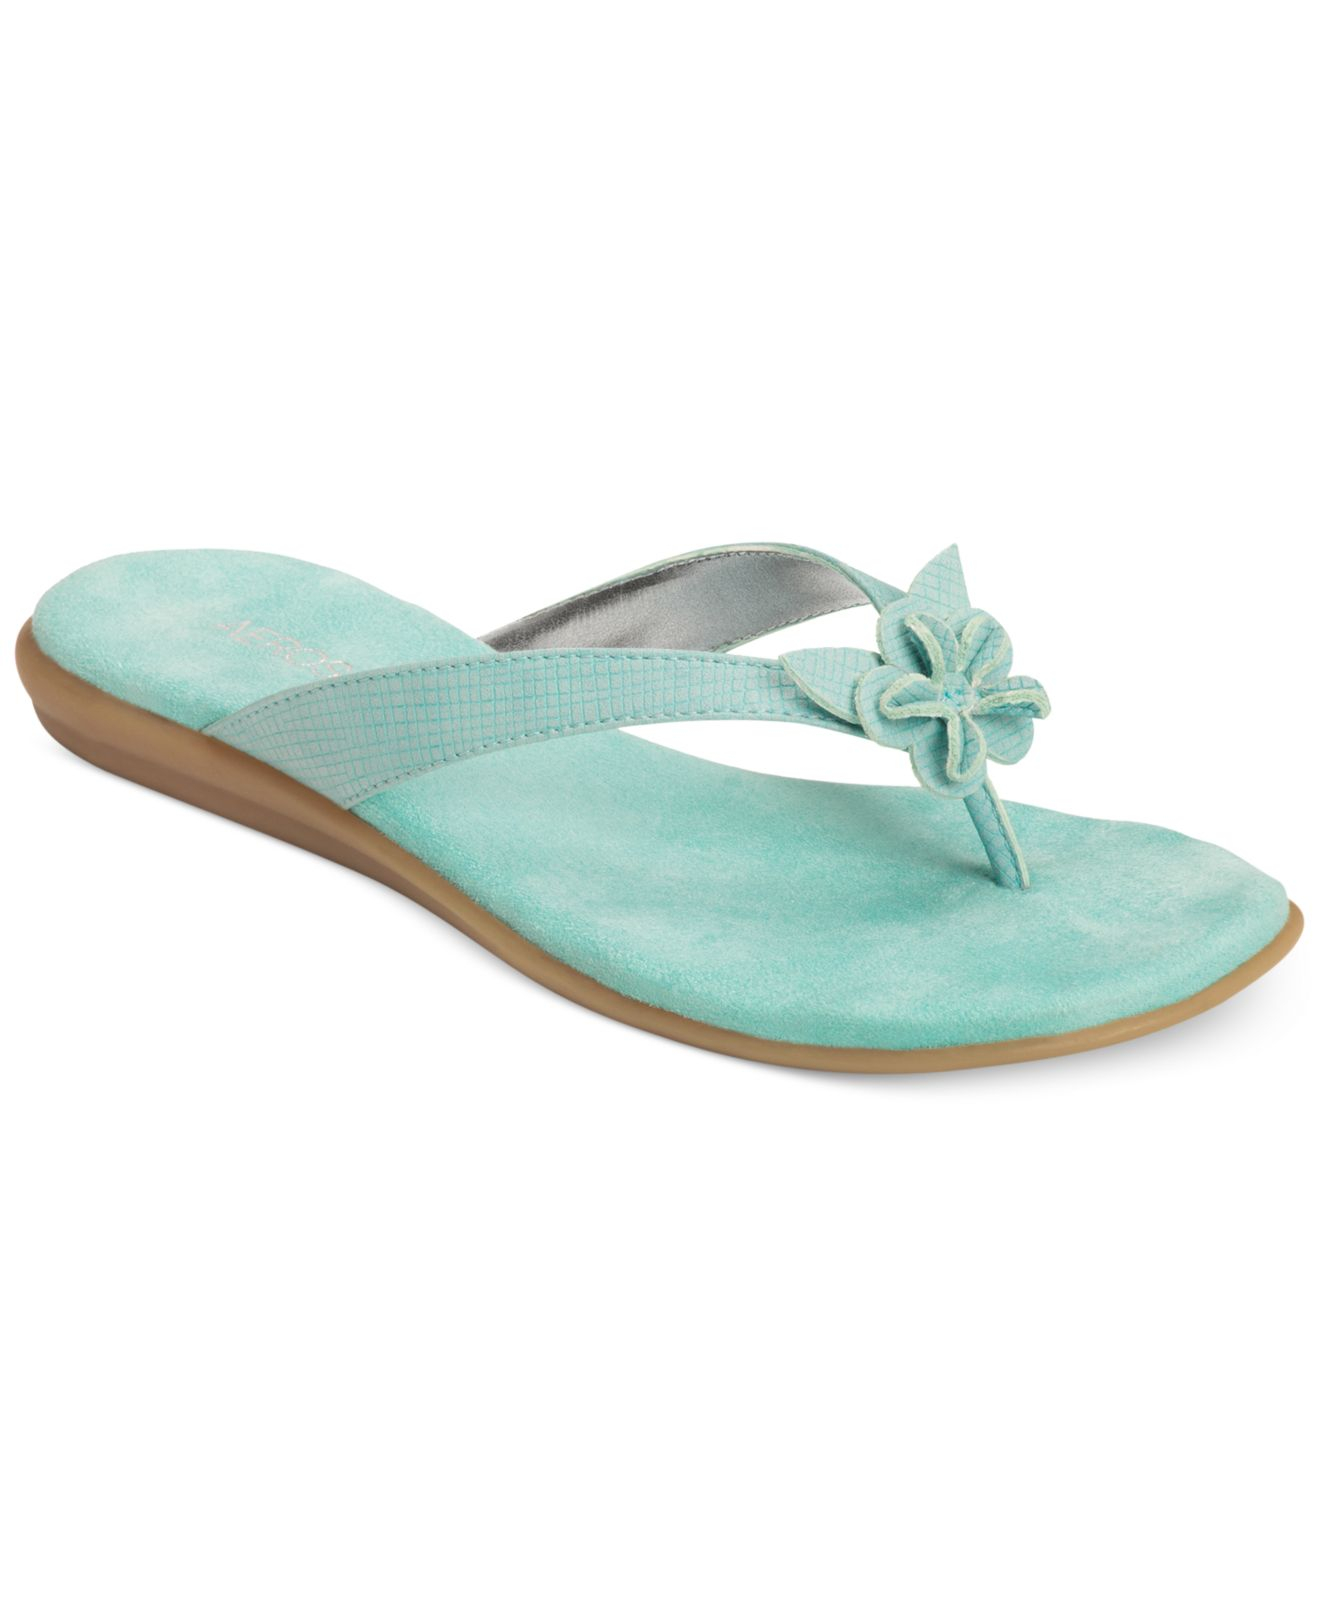 Aerosoles Branchlet Flip Flop Sandals In Blue Green Blue